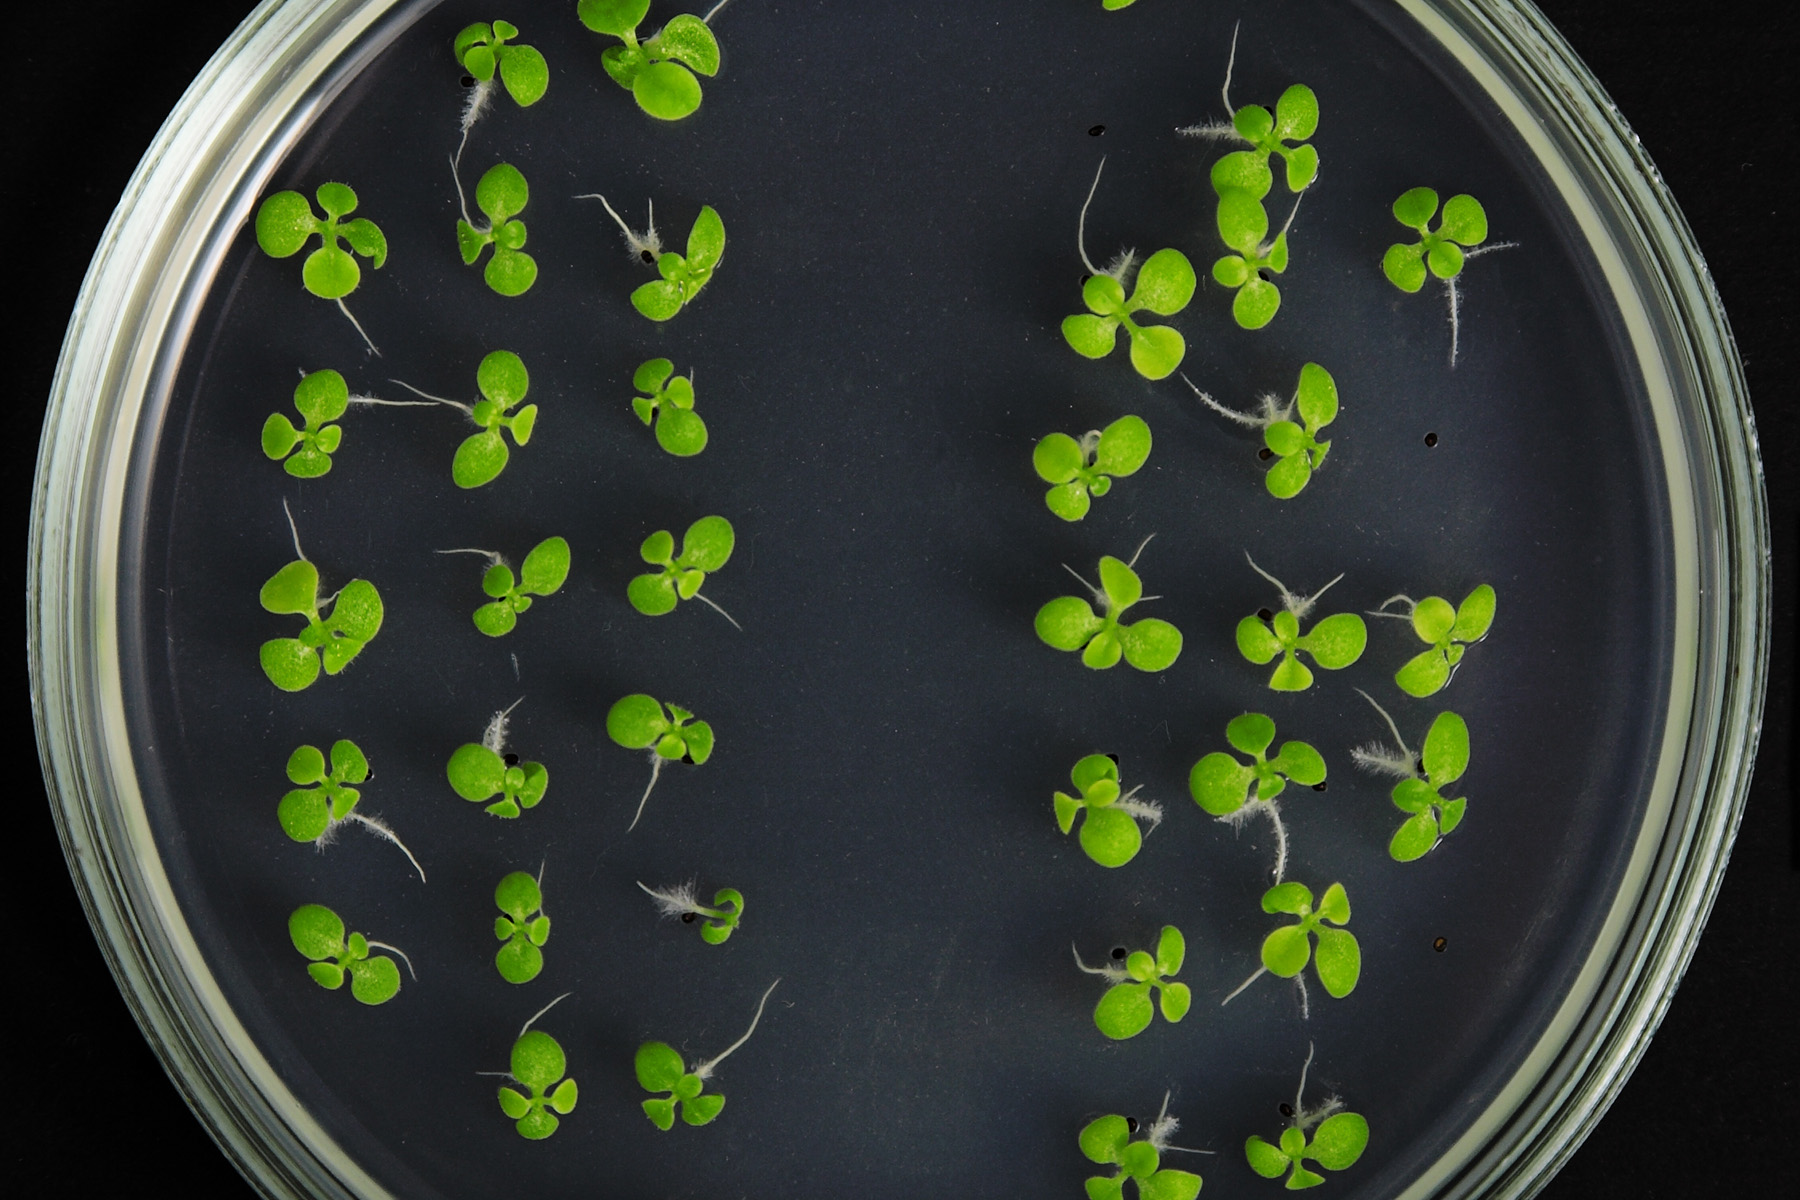 N is for nitrogen: how can we make our crops sustainable?